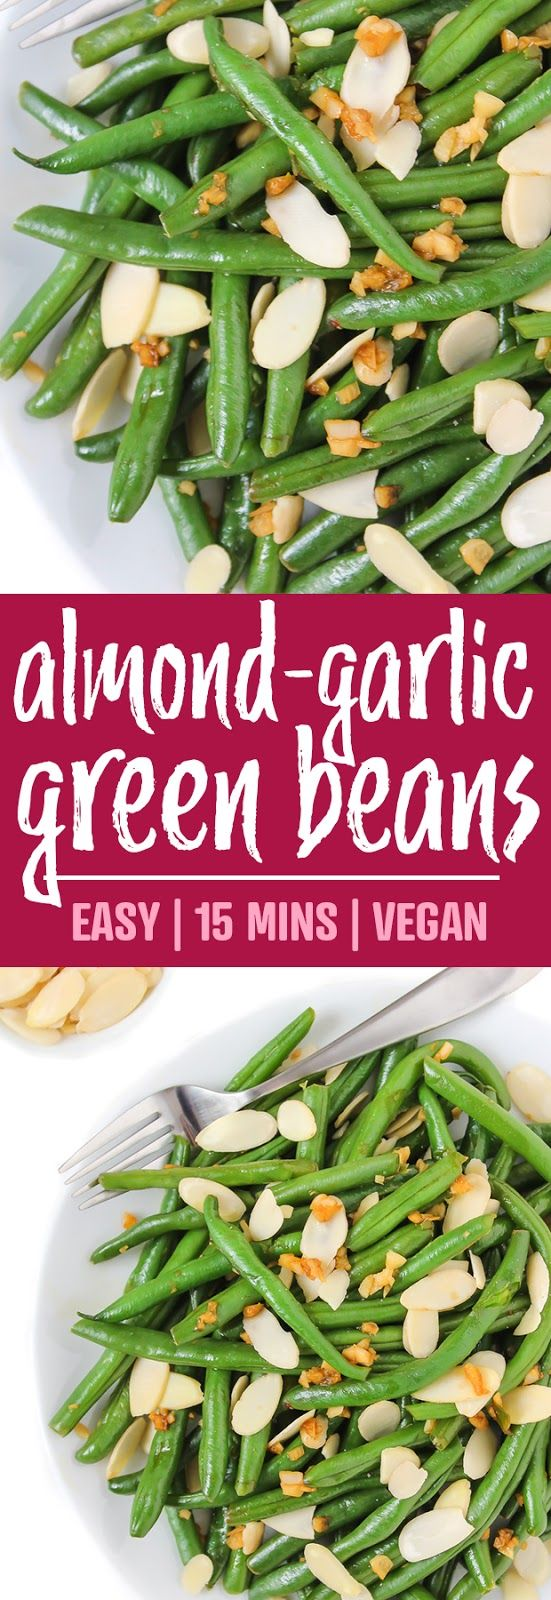 Almond-Garlic Green Beans